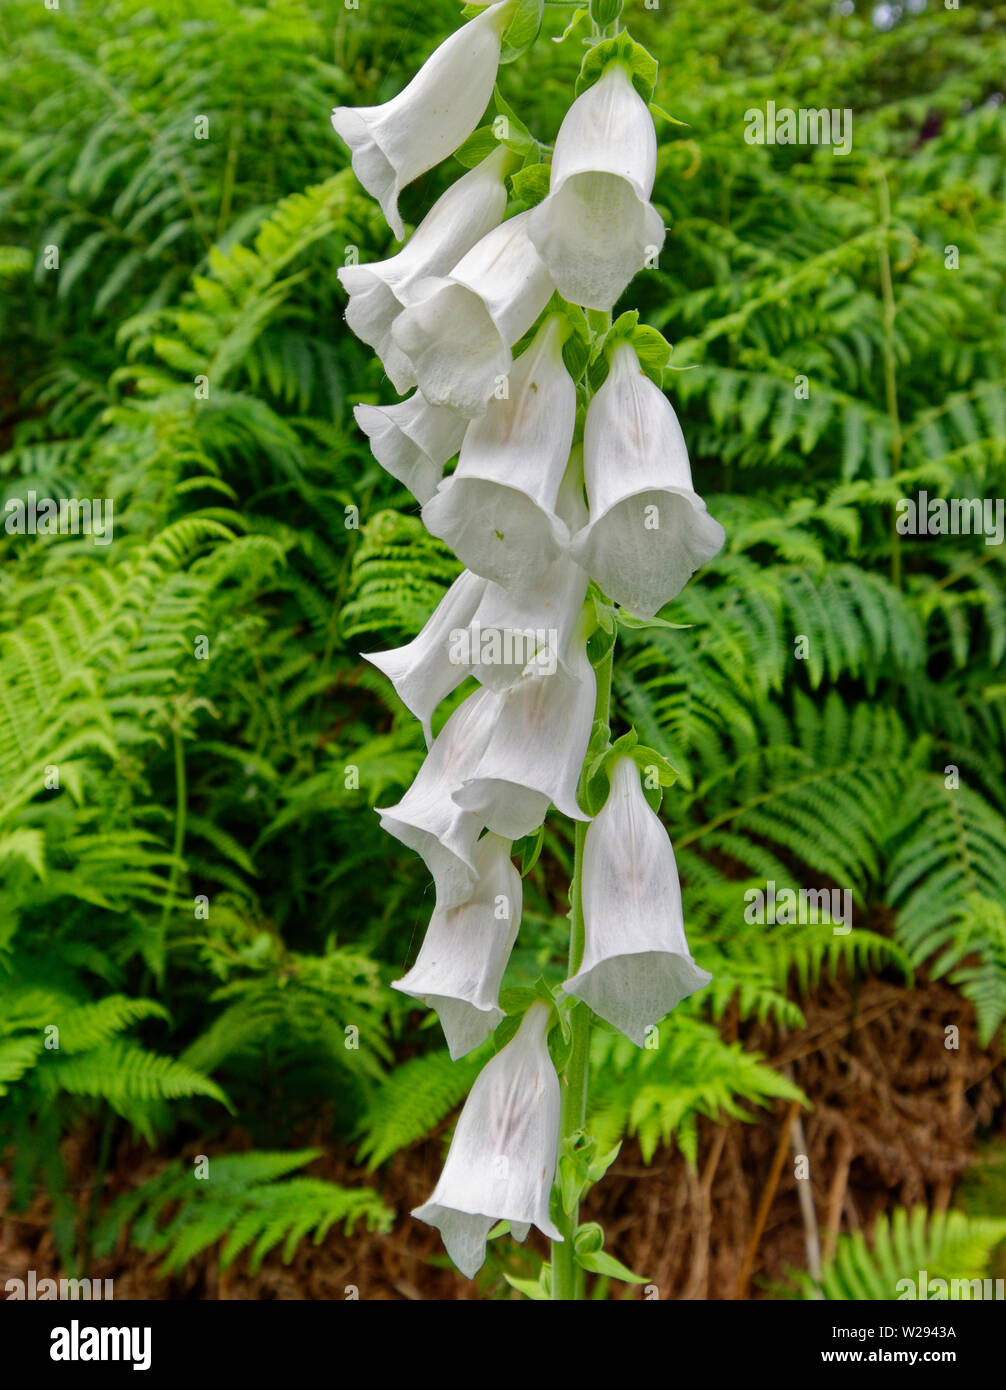 SPEYSIDE WAY SCOTLAND THE WHITE FLOWERS OF THE FOXGLOVE Digitalis purpurea GROWING IN PROFUSION IN EARLY SUMMER Stock Photo